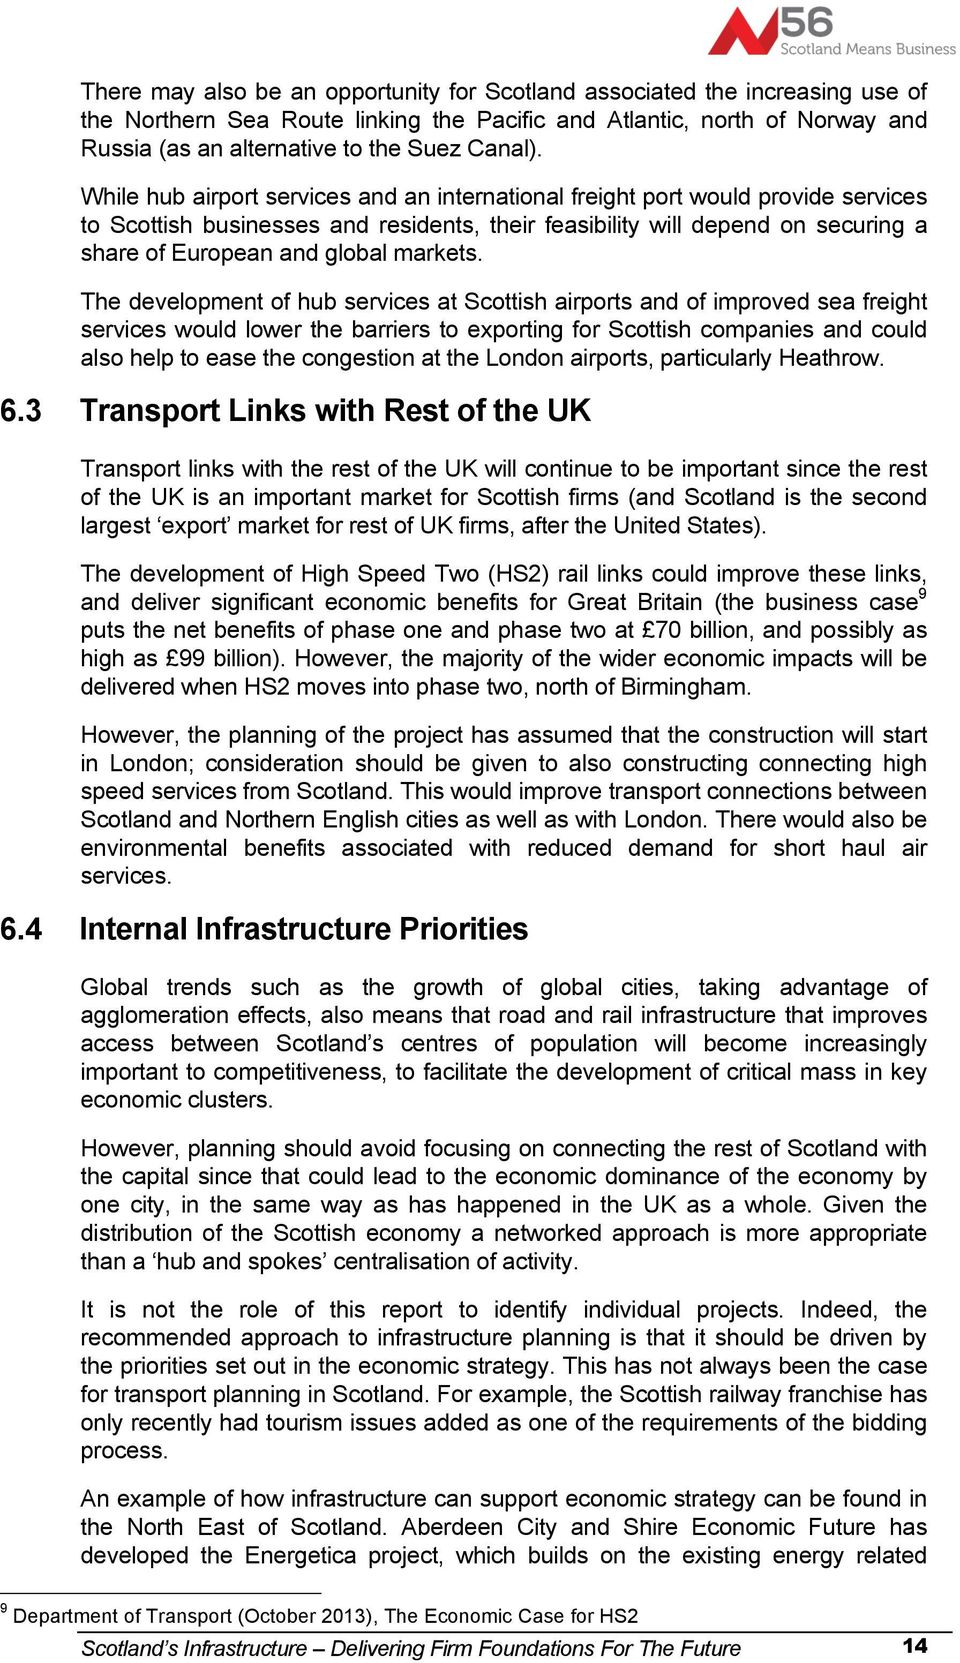 While hub airport services and an international freight port would provide services to Scottish businesses and residents, their feasibility will depend on securing a share of European and global